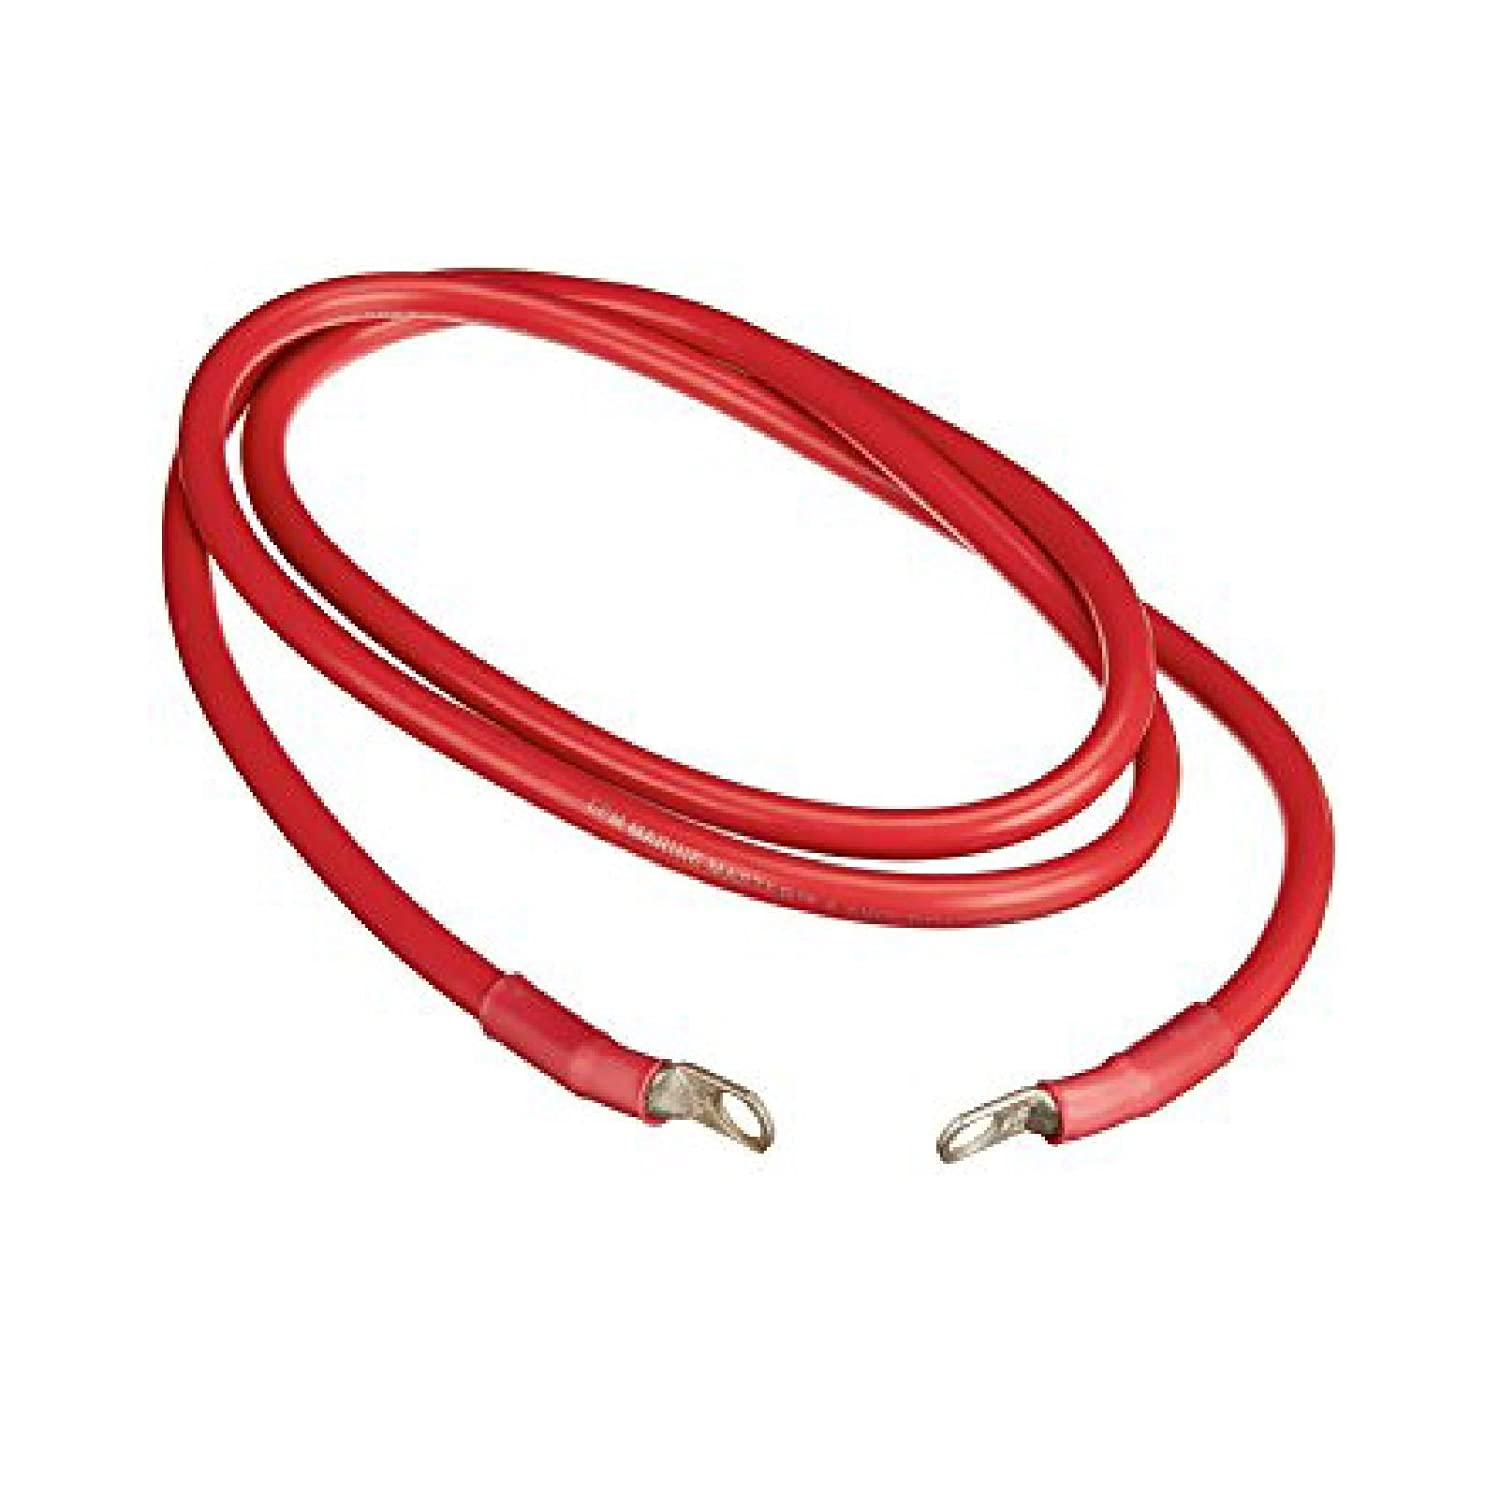 Positive Red Battery Earth Strap 760mm 30 Inch Switch Starter Cable Car Flexi Lead